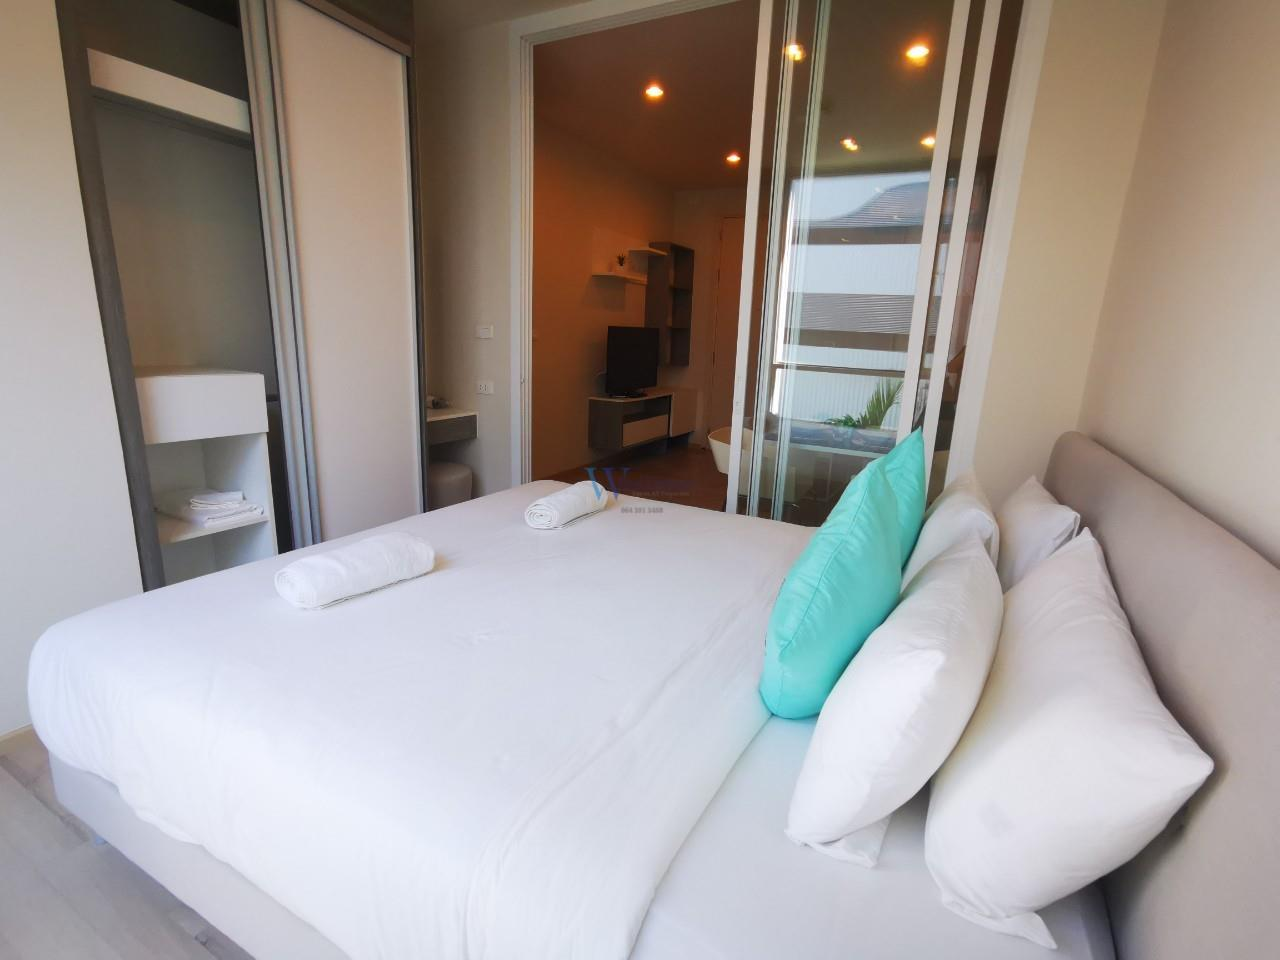 W Real Property Agency's 1 Bedroom Condo for rent in The Base Downtown Phuket, Wichit, Phuket 14